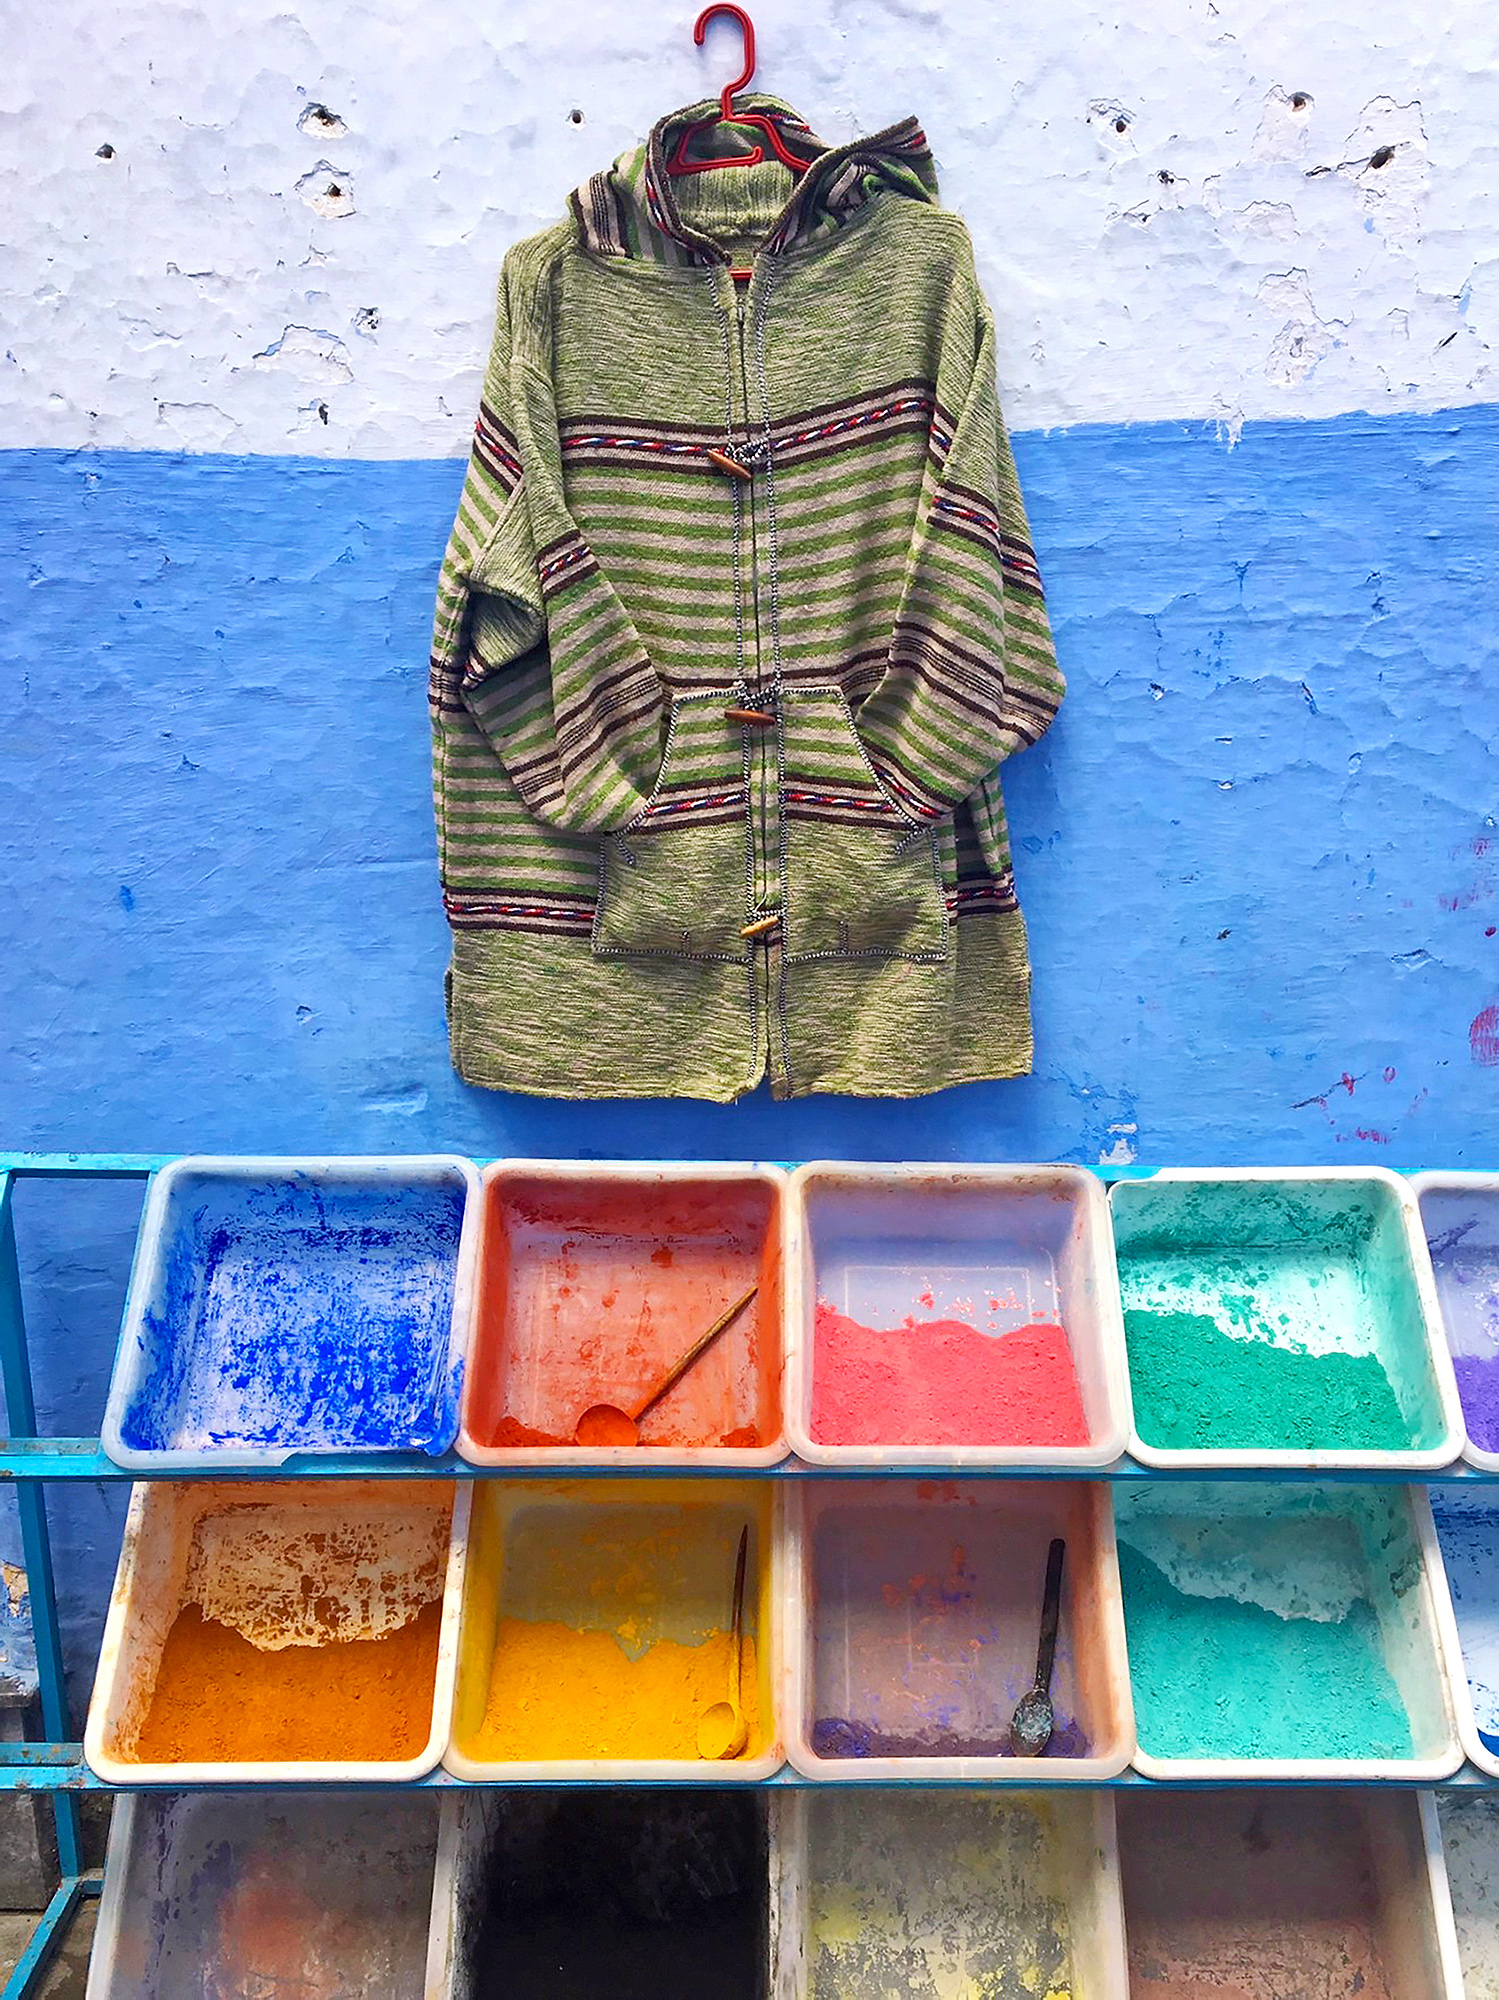 a zippered hooded jacket hangs on a wall painted white and blue above open bins of colored pigment